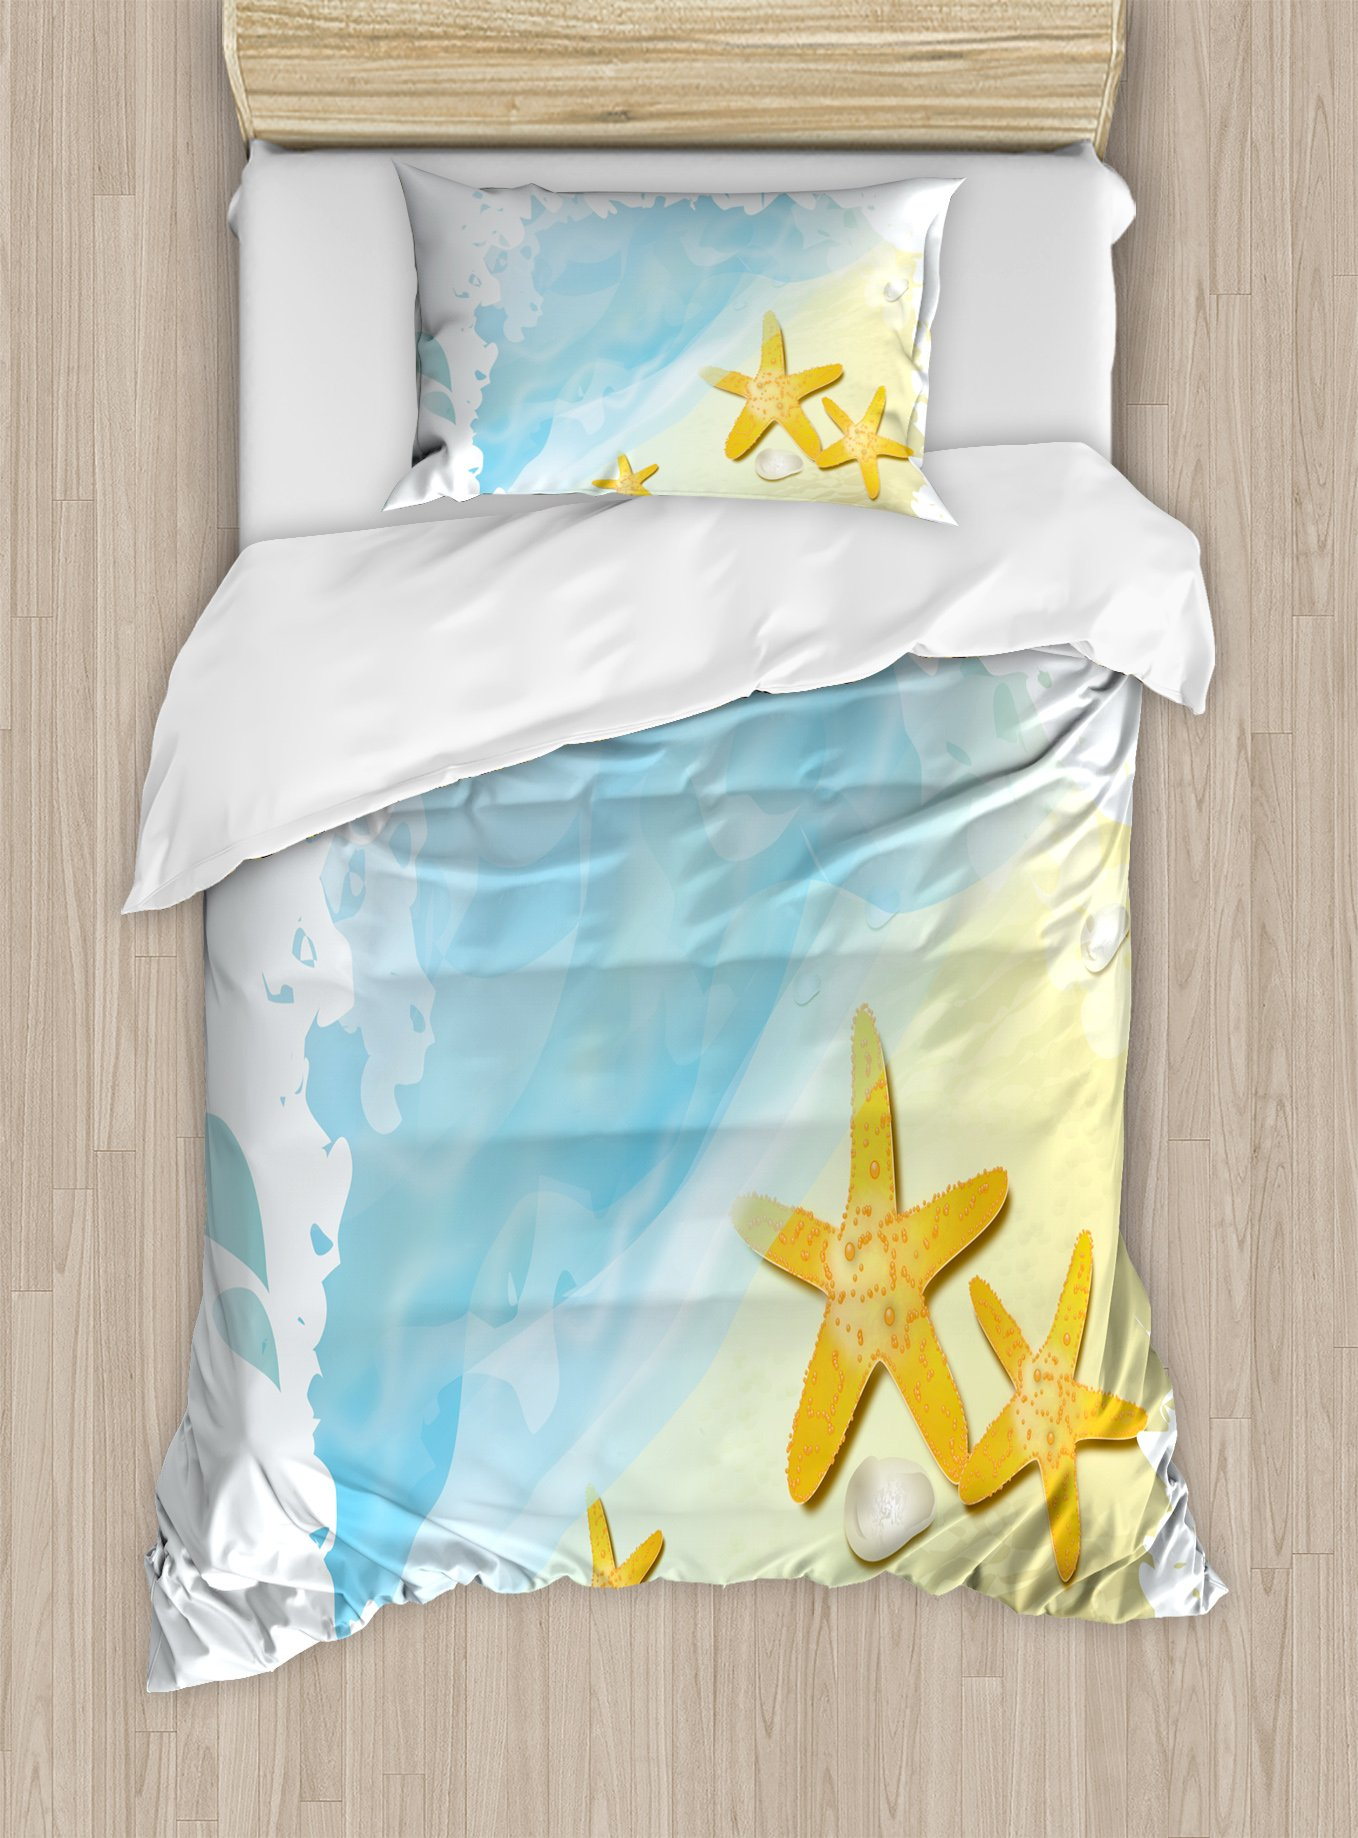 Ambesonne Starfish Duvet Cover Set Twin Size, Artistic Beach Sand and Small Rocks Aquatic Life Animals Exotic Vacation Theme, Decorative 2 Piece Bedding Set with 1 Pillow Sham, Multicolor